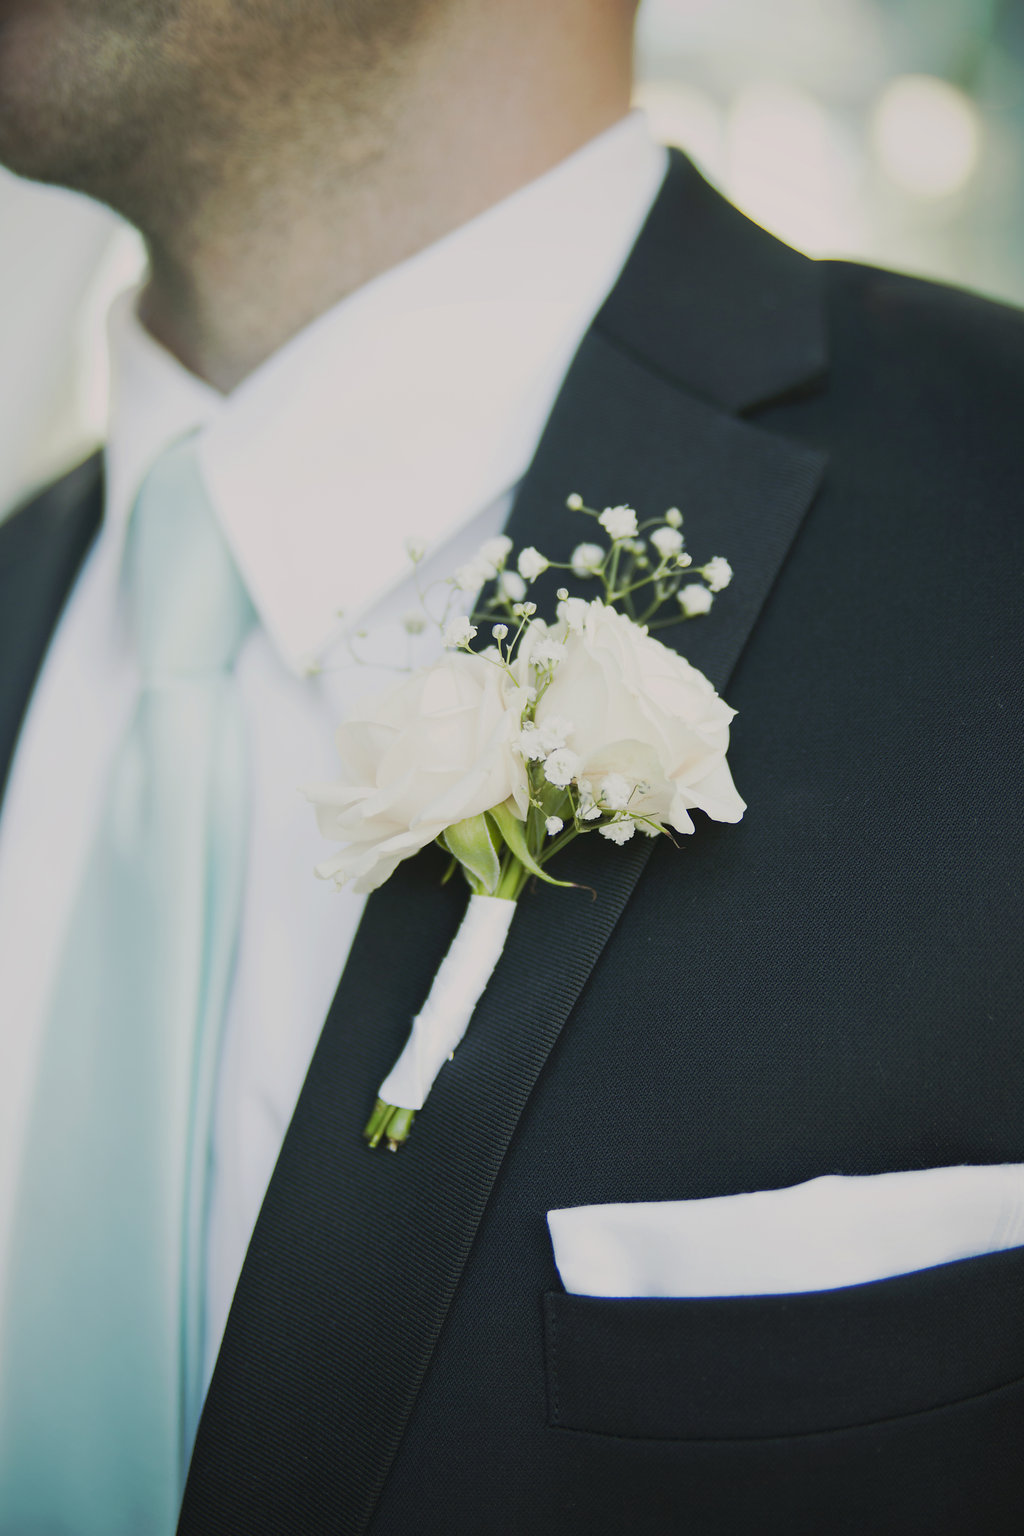 grooms boutonniere with roses and baby's breath